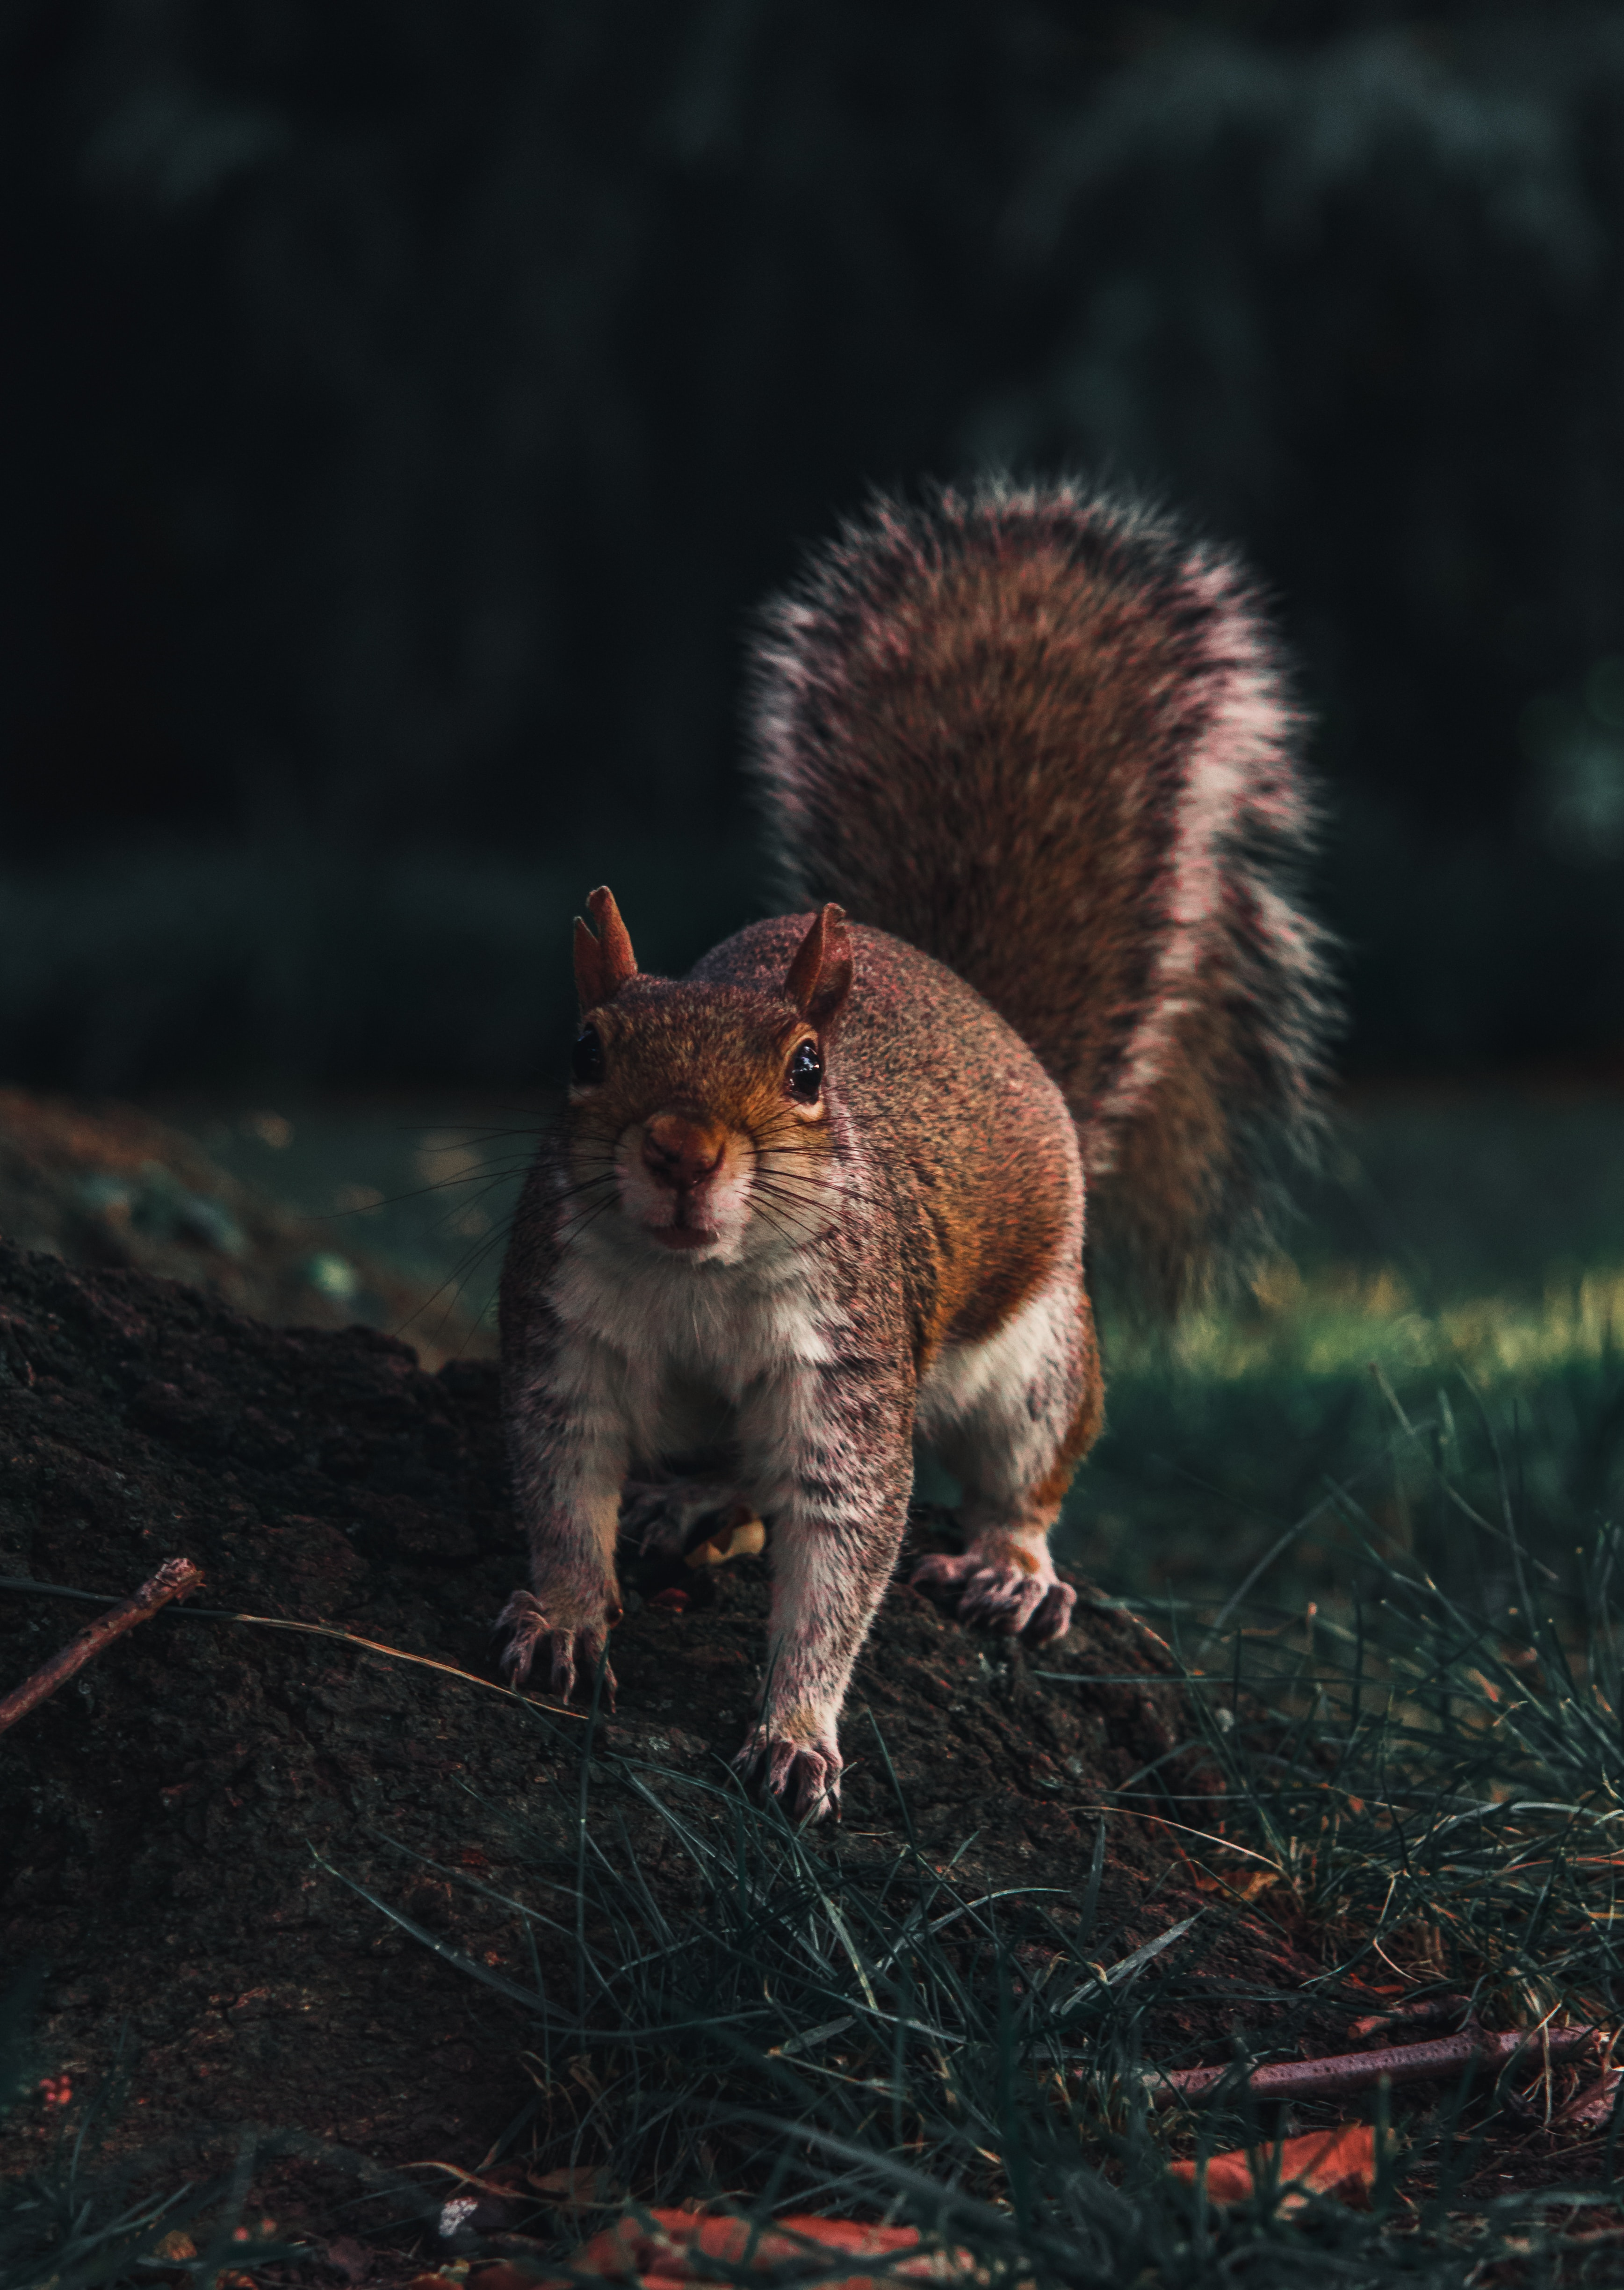 133645 download wallpaper Funny, Animals, Squirrel, Sight, Opinion, Wildlife, Animal screensavers and pictures for free